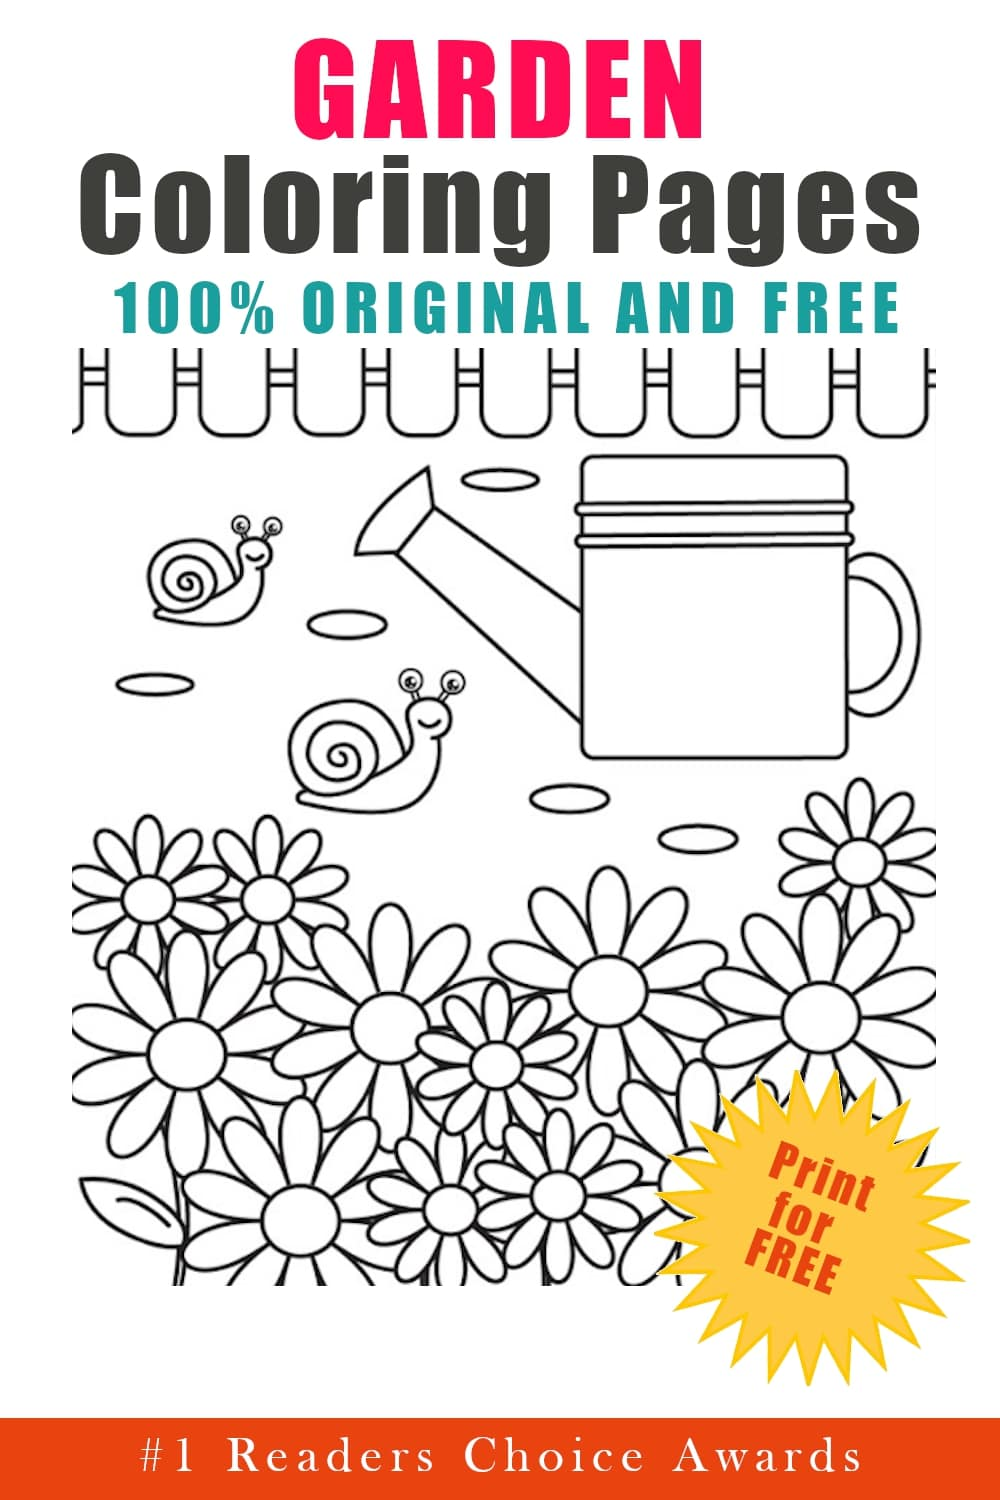 original and free garden coloring pages